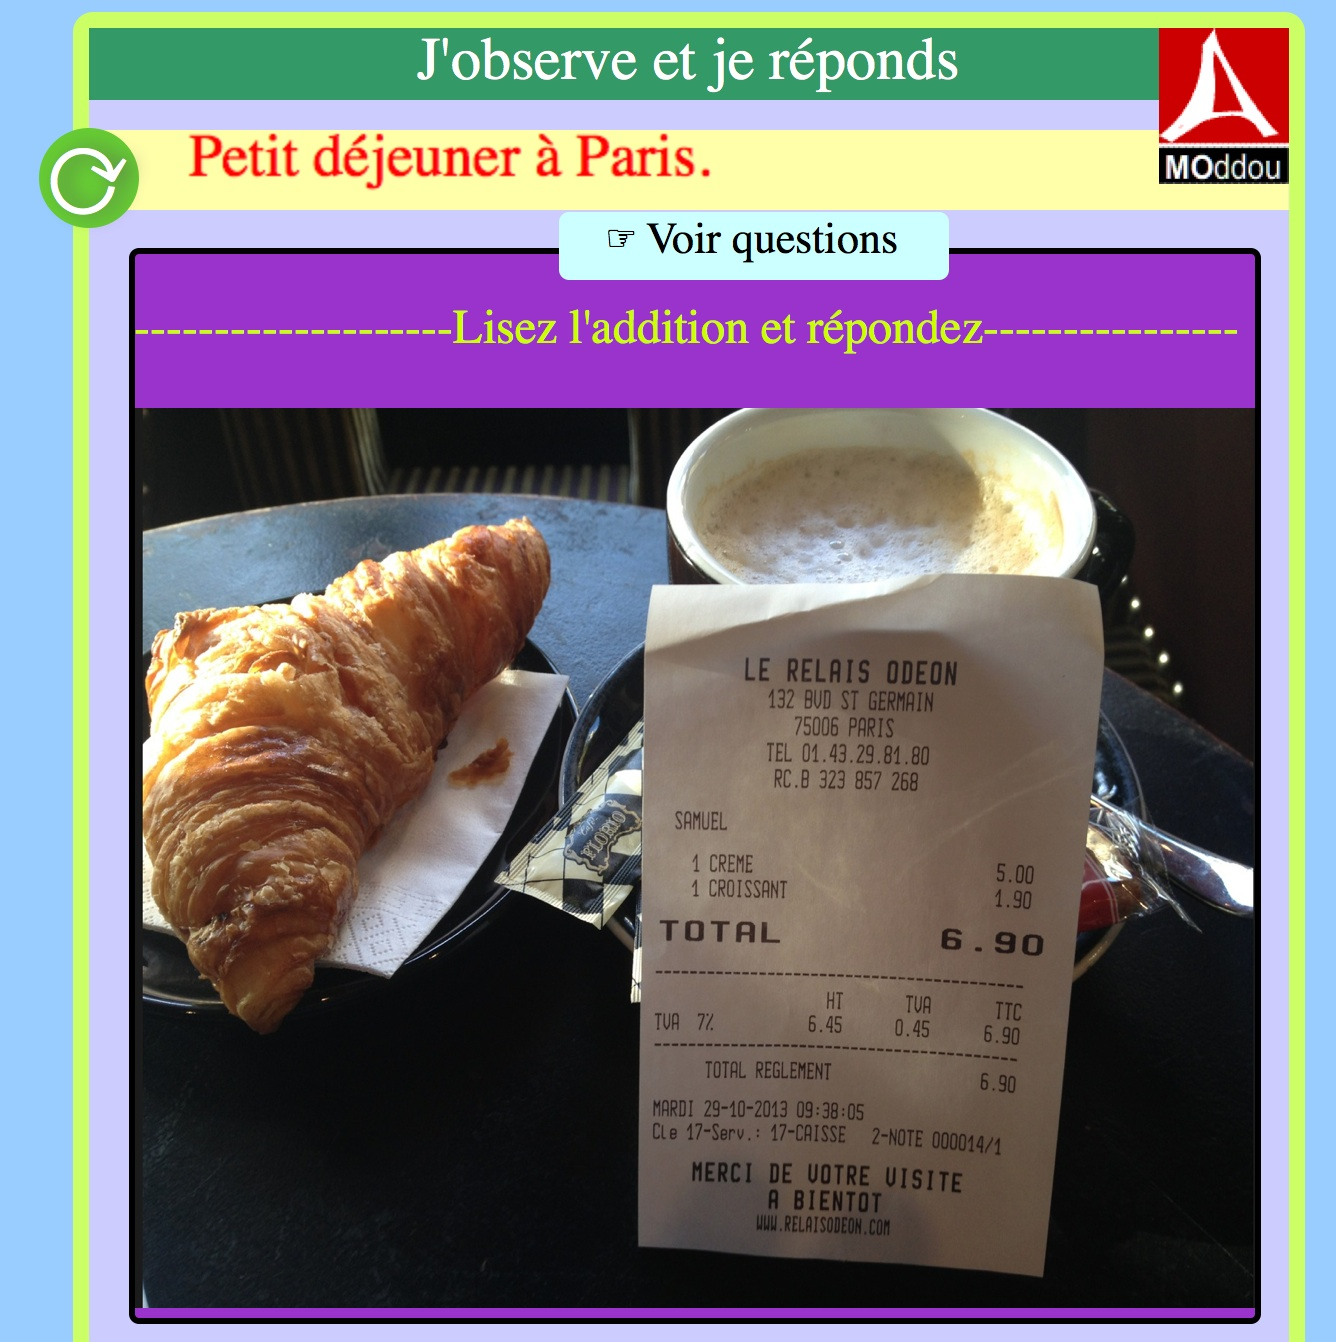 Questions à partir d'un document authentique : un petit déjeuner à Paris.